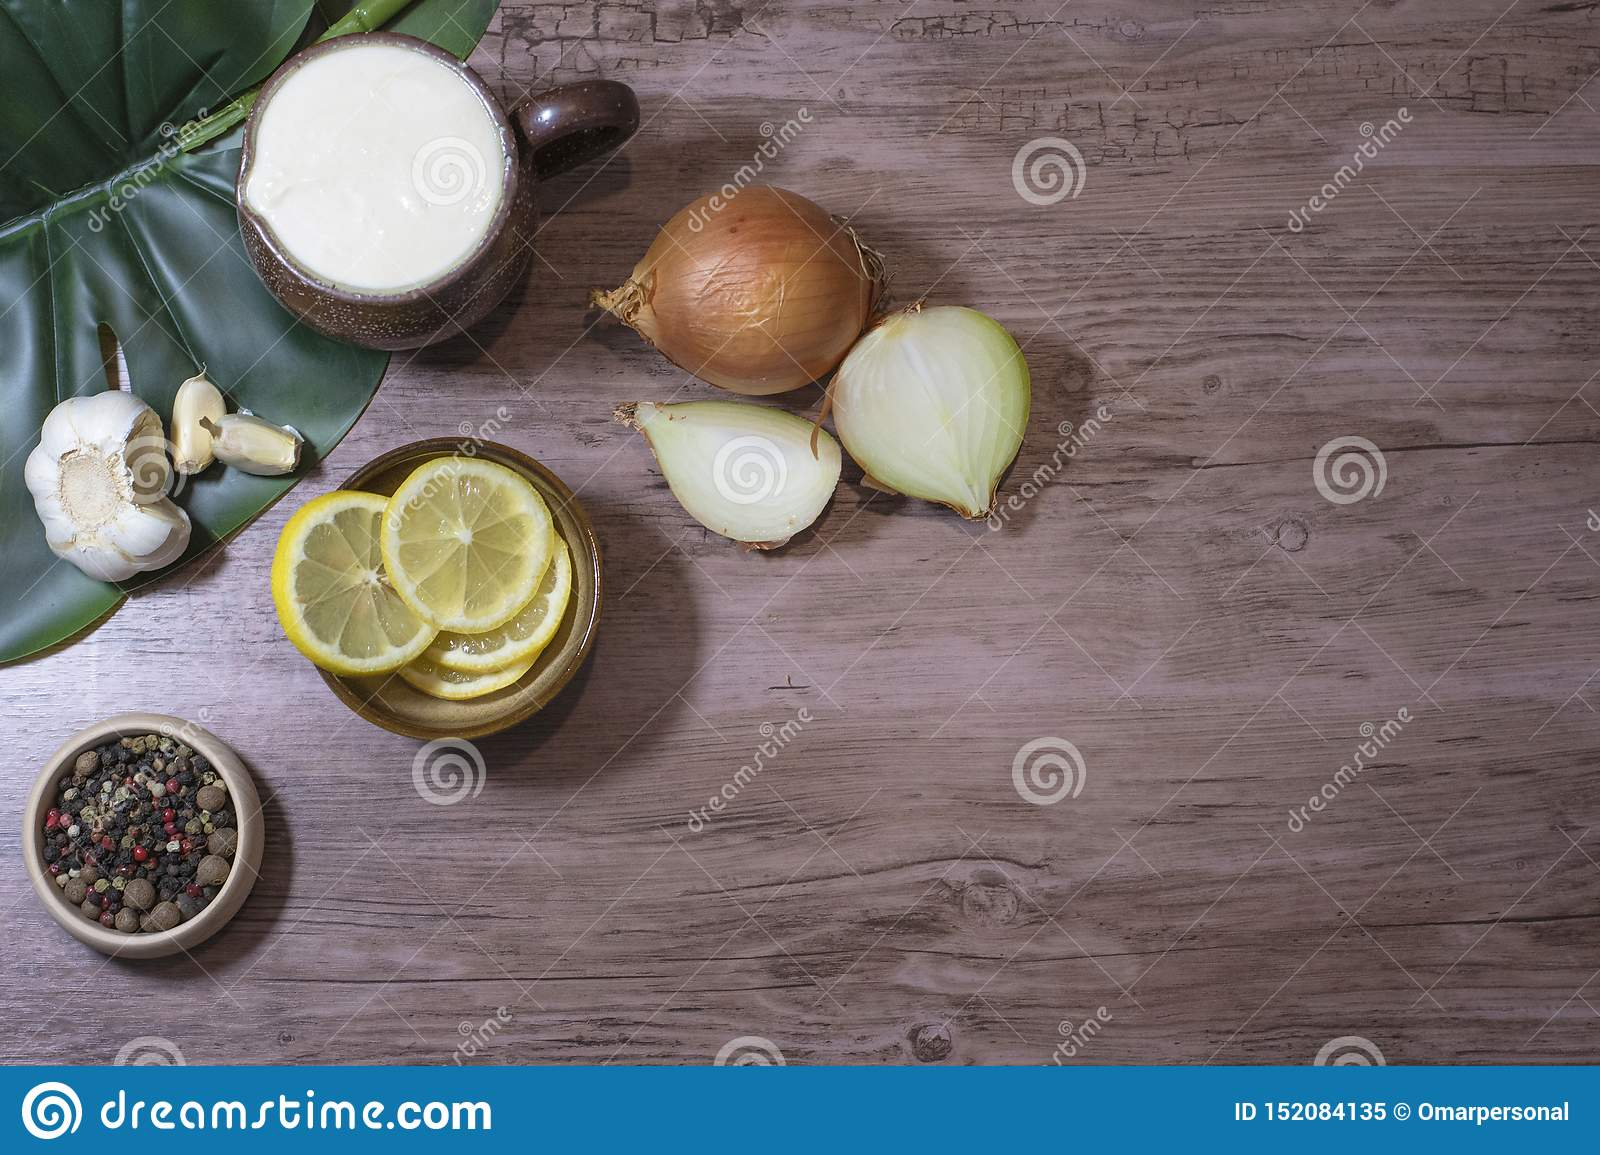 Food ingredients lemon slices onion yogurt garlic spices on a wooden table with a space in the right for written